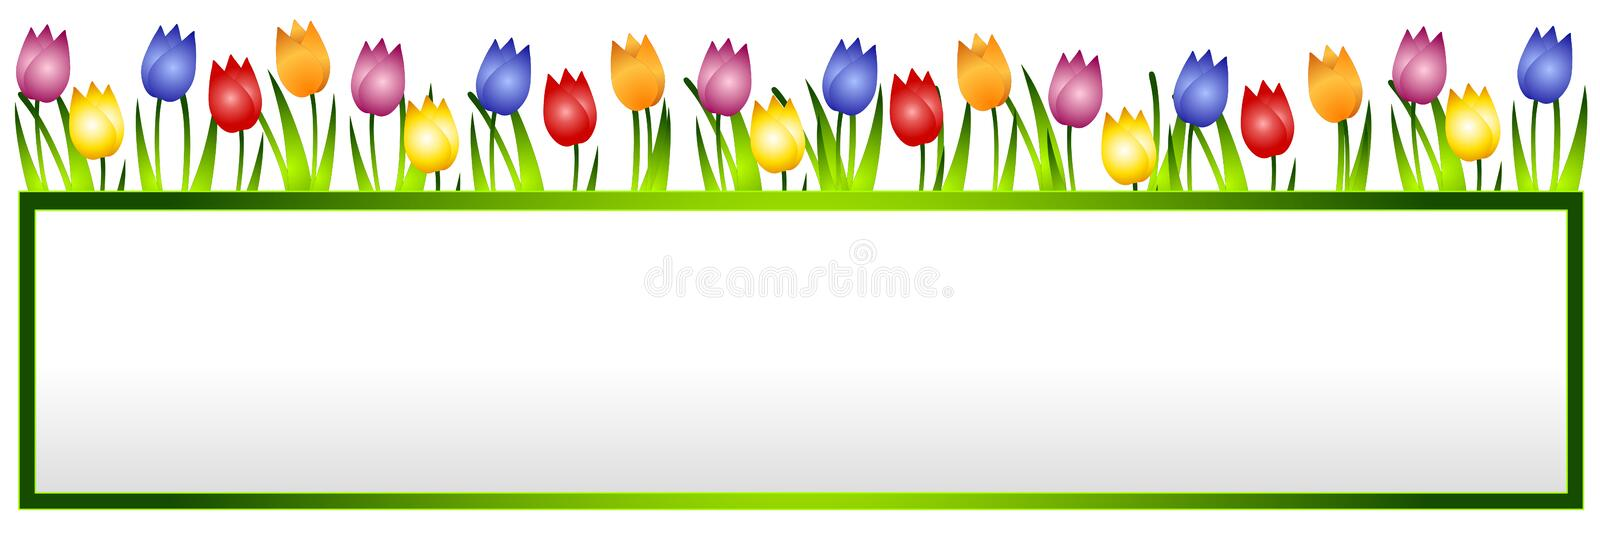 Download Spring Tulips Flower Banner Or Logo Royalty Free Stock Photo - Image: 4026235